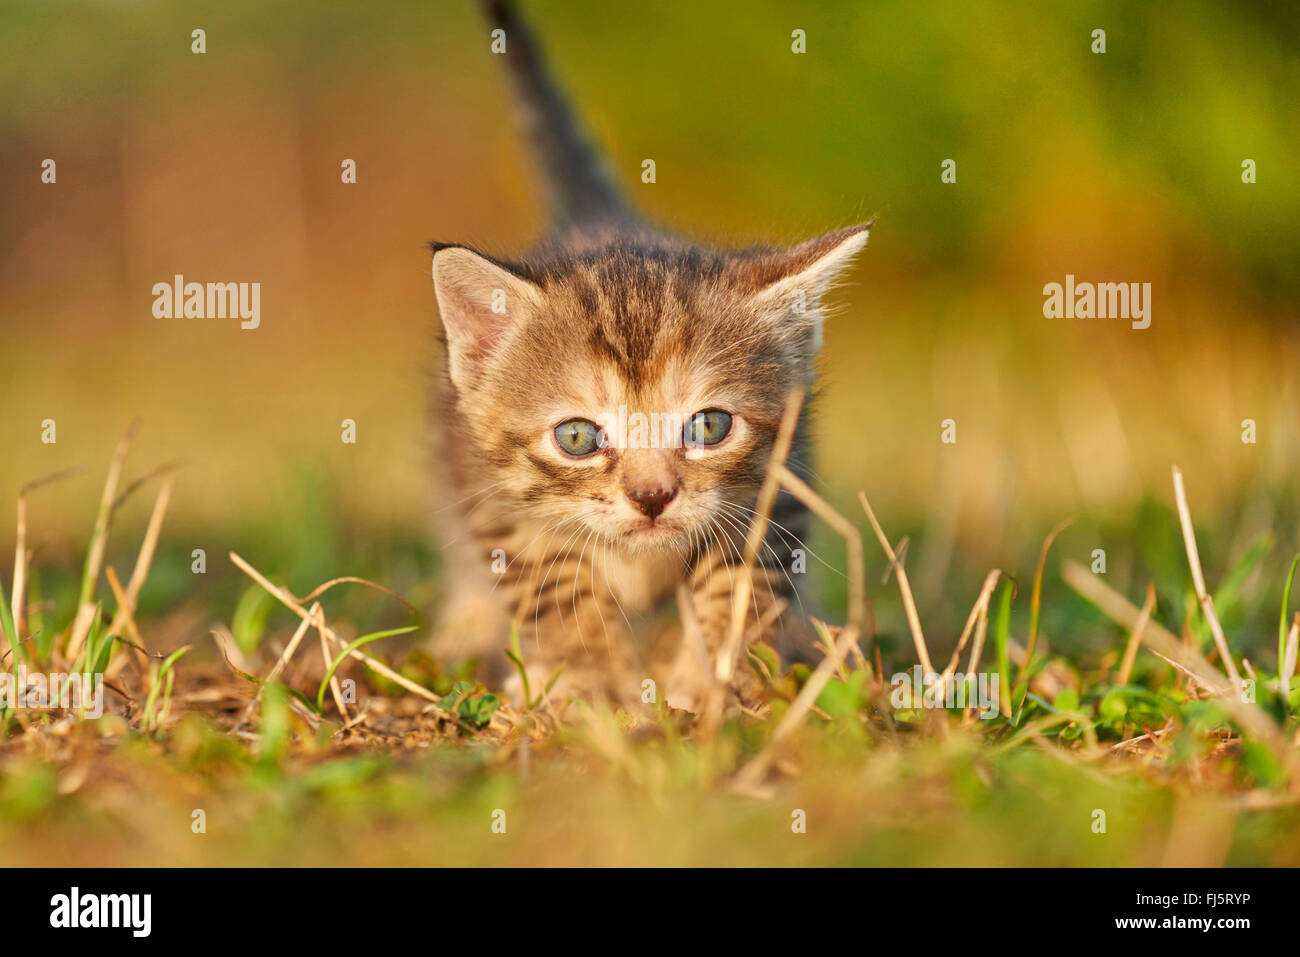 domestic cat, house cat (Felis silvestris f. catus), five weeks old kitten standing in a meadow, Germany - Stock Image